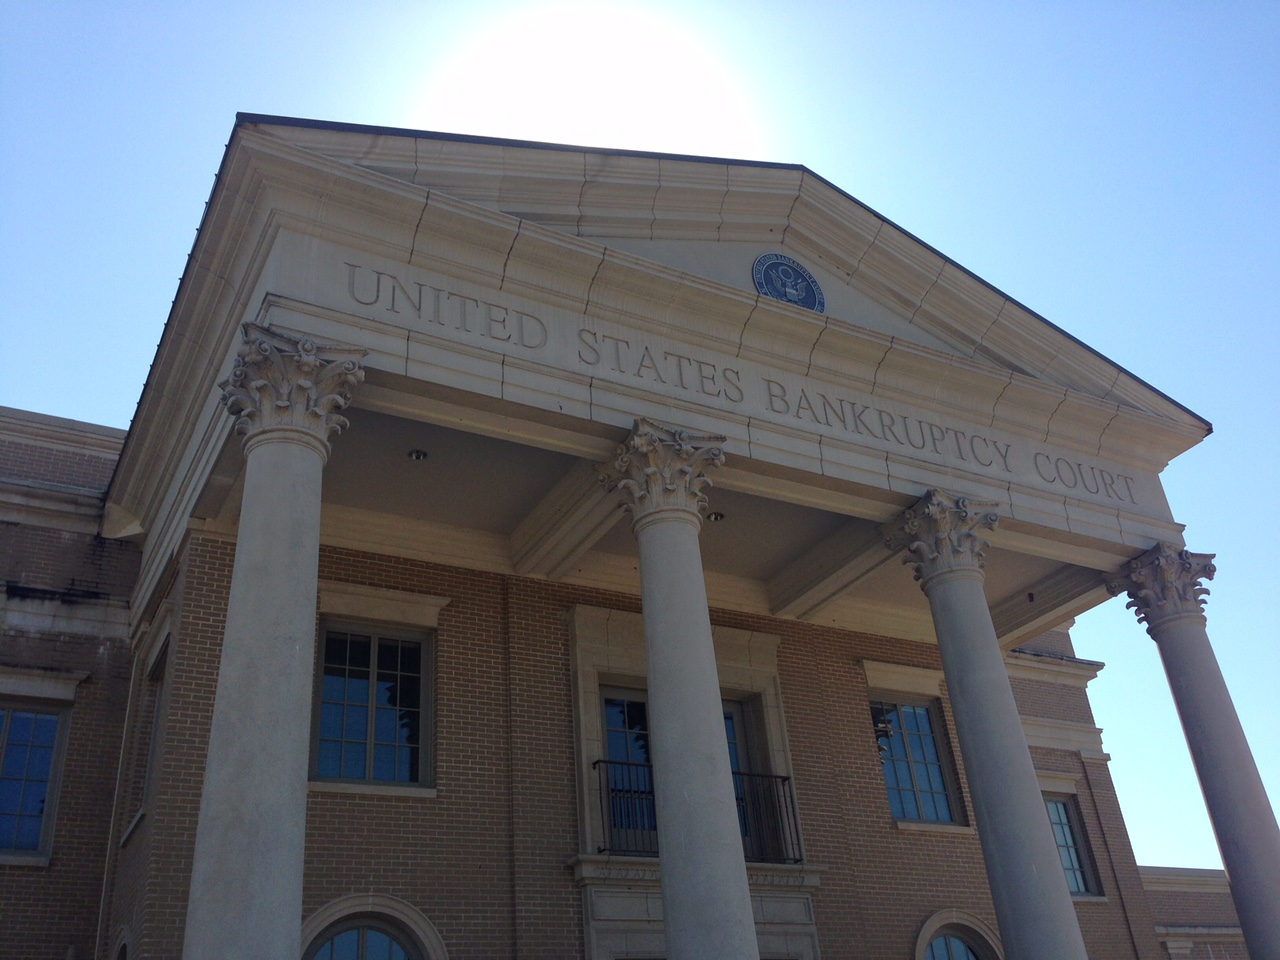 US Bankruptcy Court house Aberdeen Mississippi